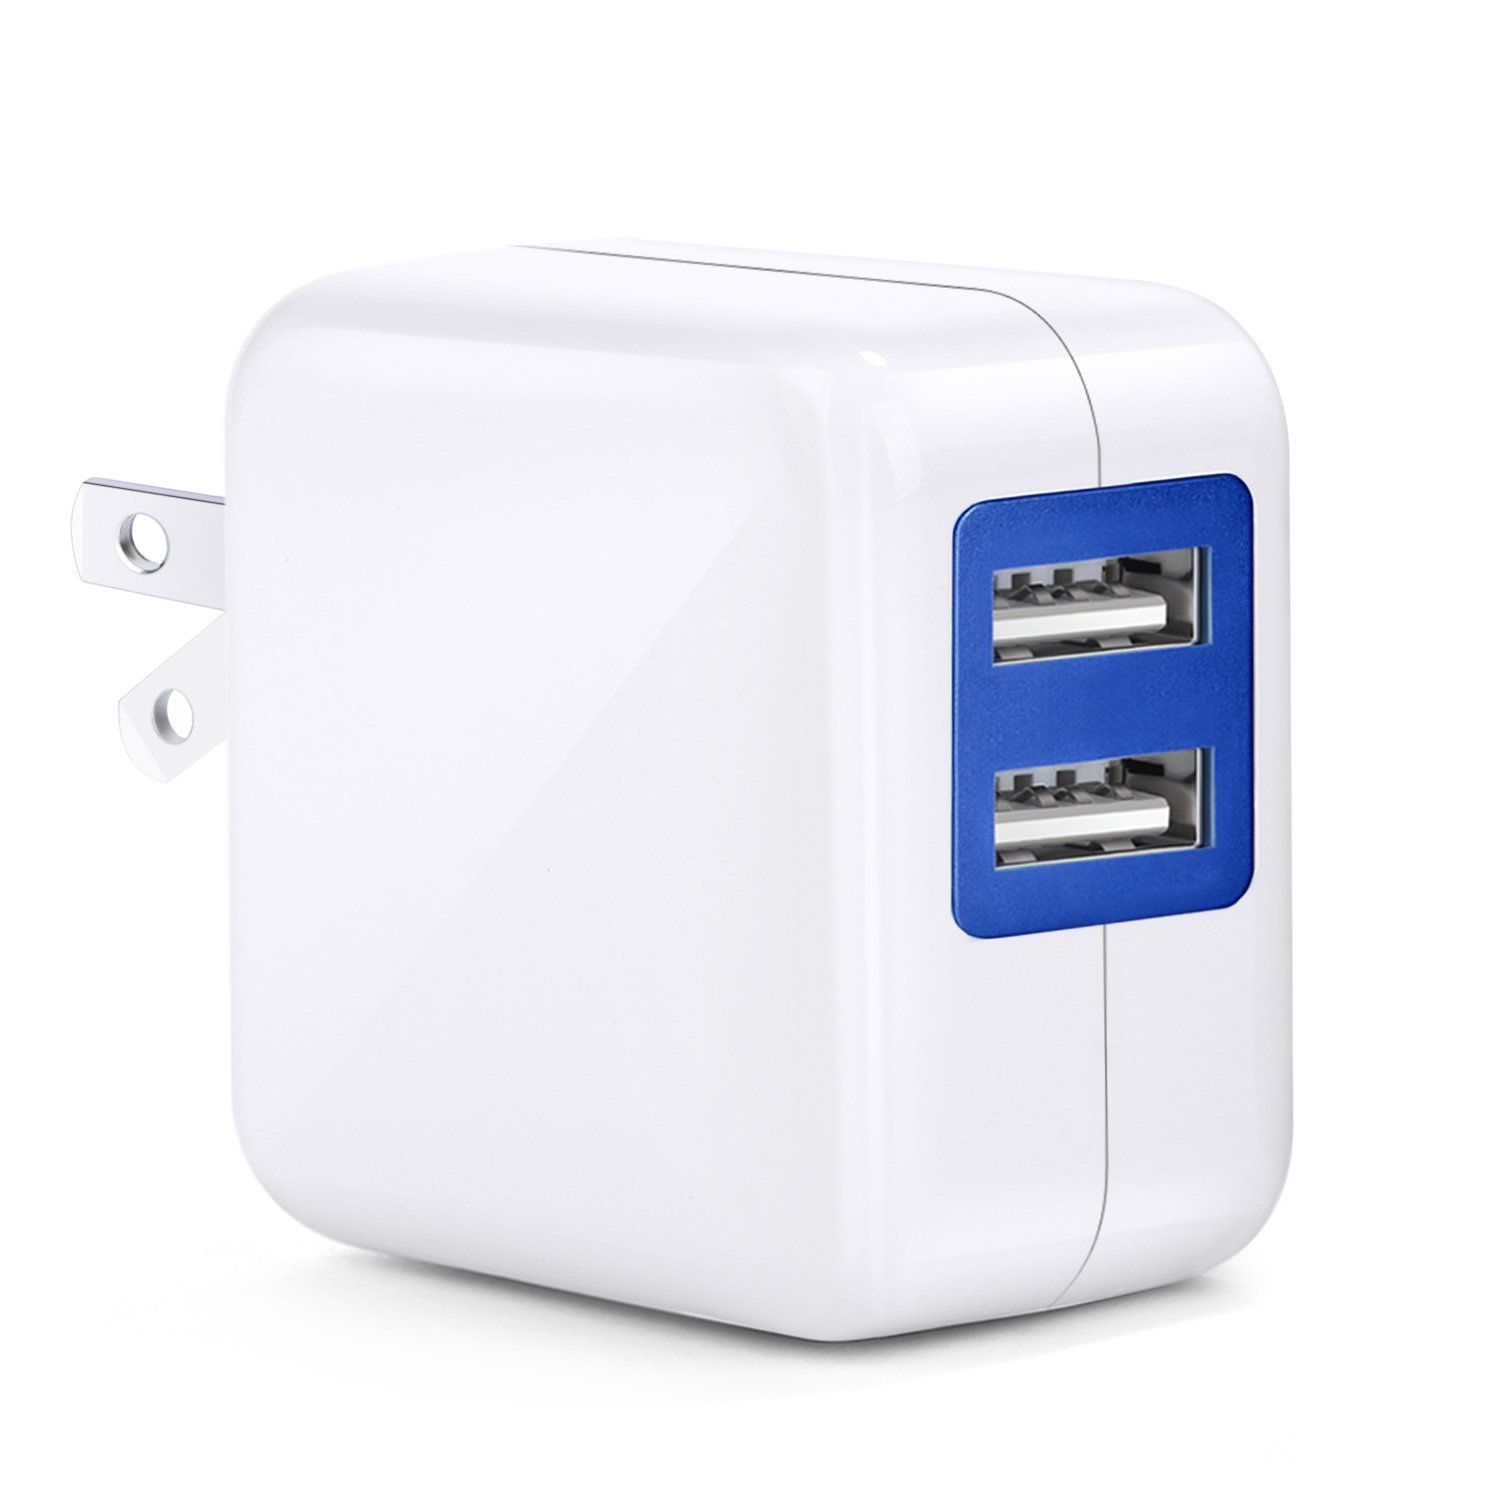 USB Wall Charger, Besgoods 2.5A 12W Portable Dual USB Travel Wall Charger Power Adapter with Folding Plug for iPhone 7 Plus SE 6s Plus, iPad Air Mini, Samsung, Android, HTC, Google Nexus, White